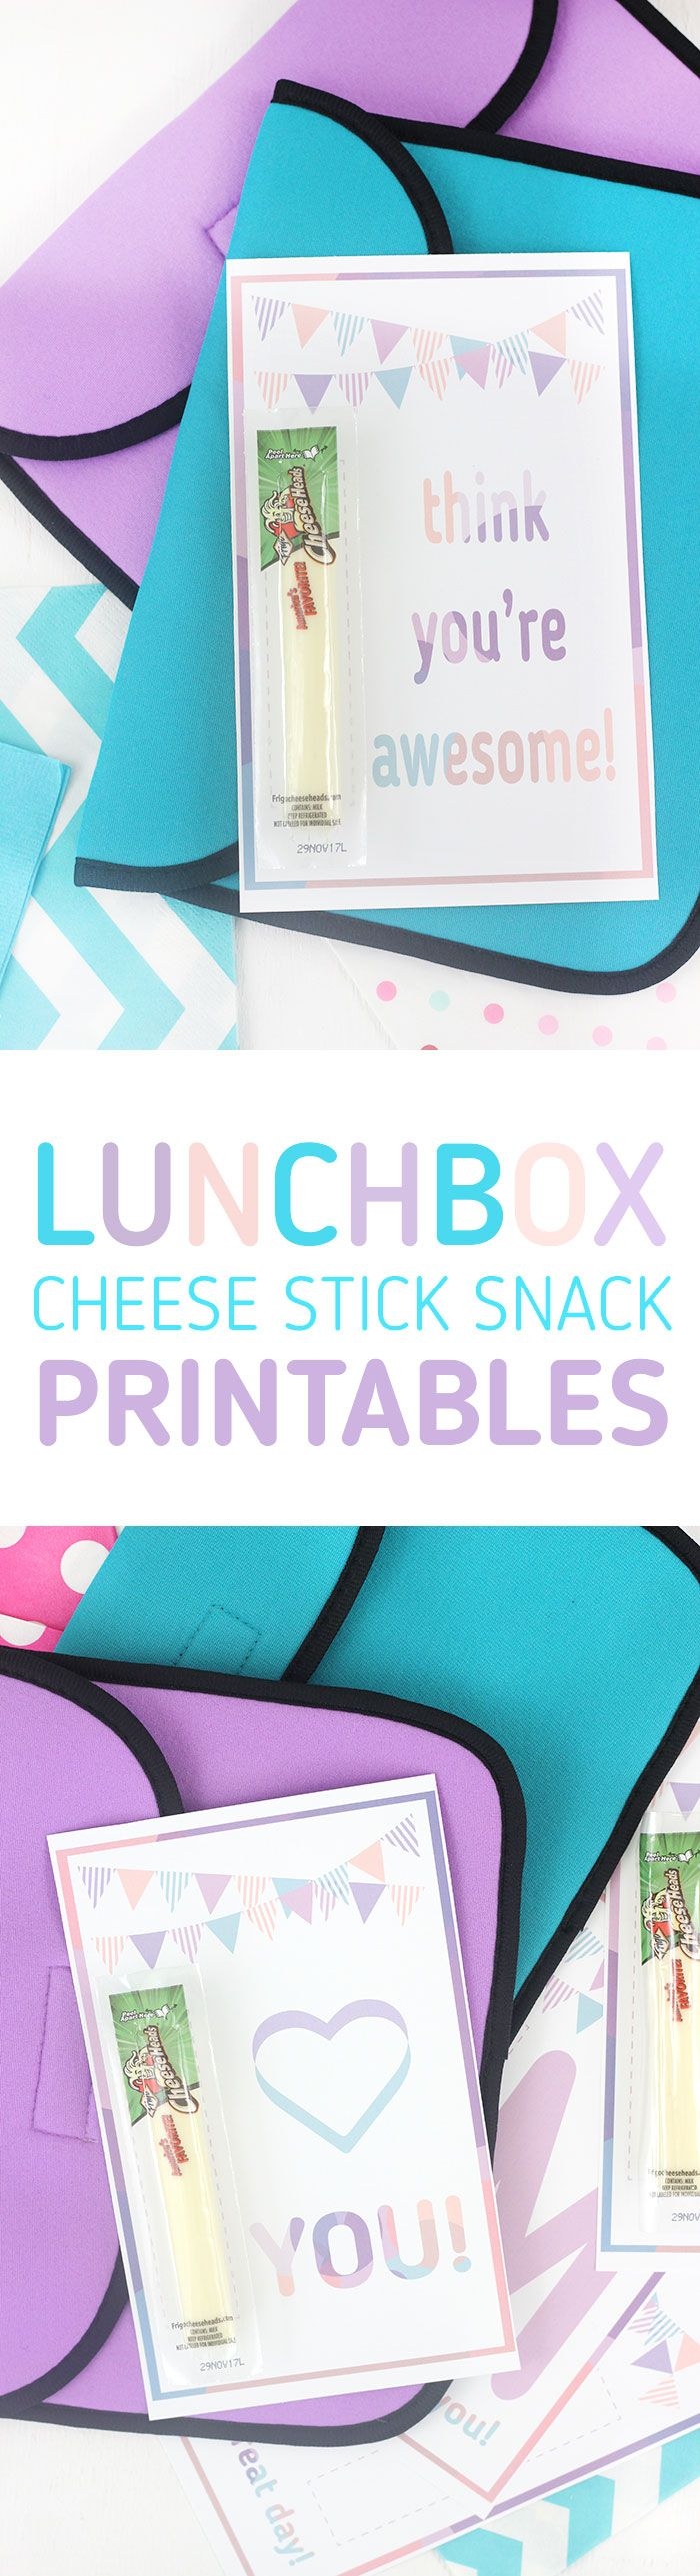 Lunchbox Printables for Frigo® Cheese Heads® cheese stick snacks. Super cute way to share love with your kiddos in their lunchbox. AD